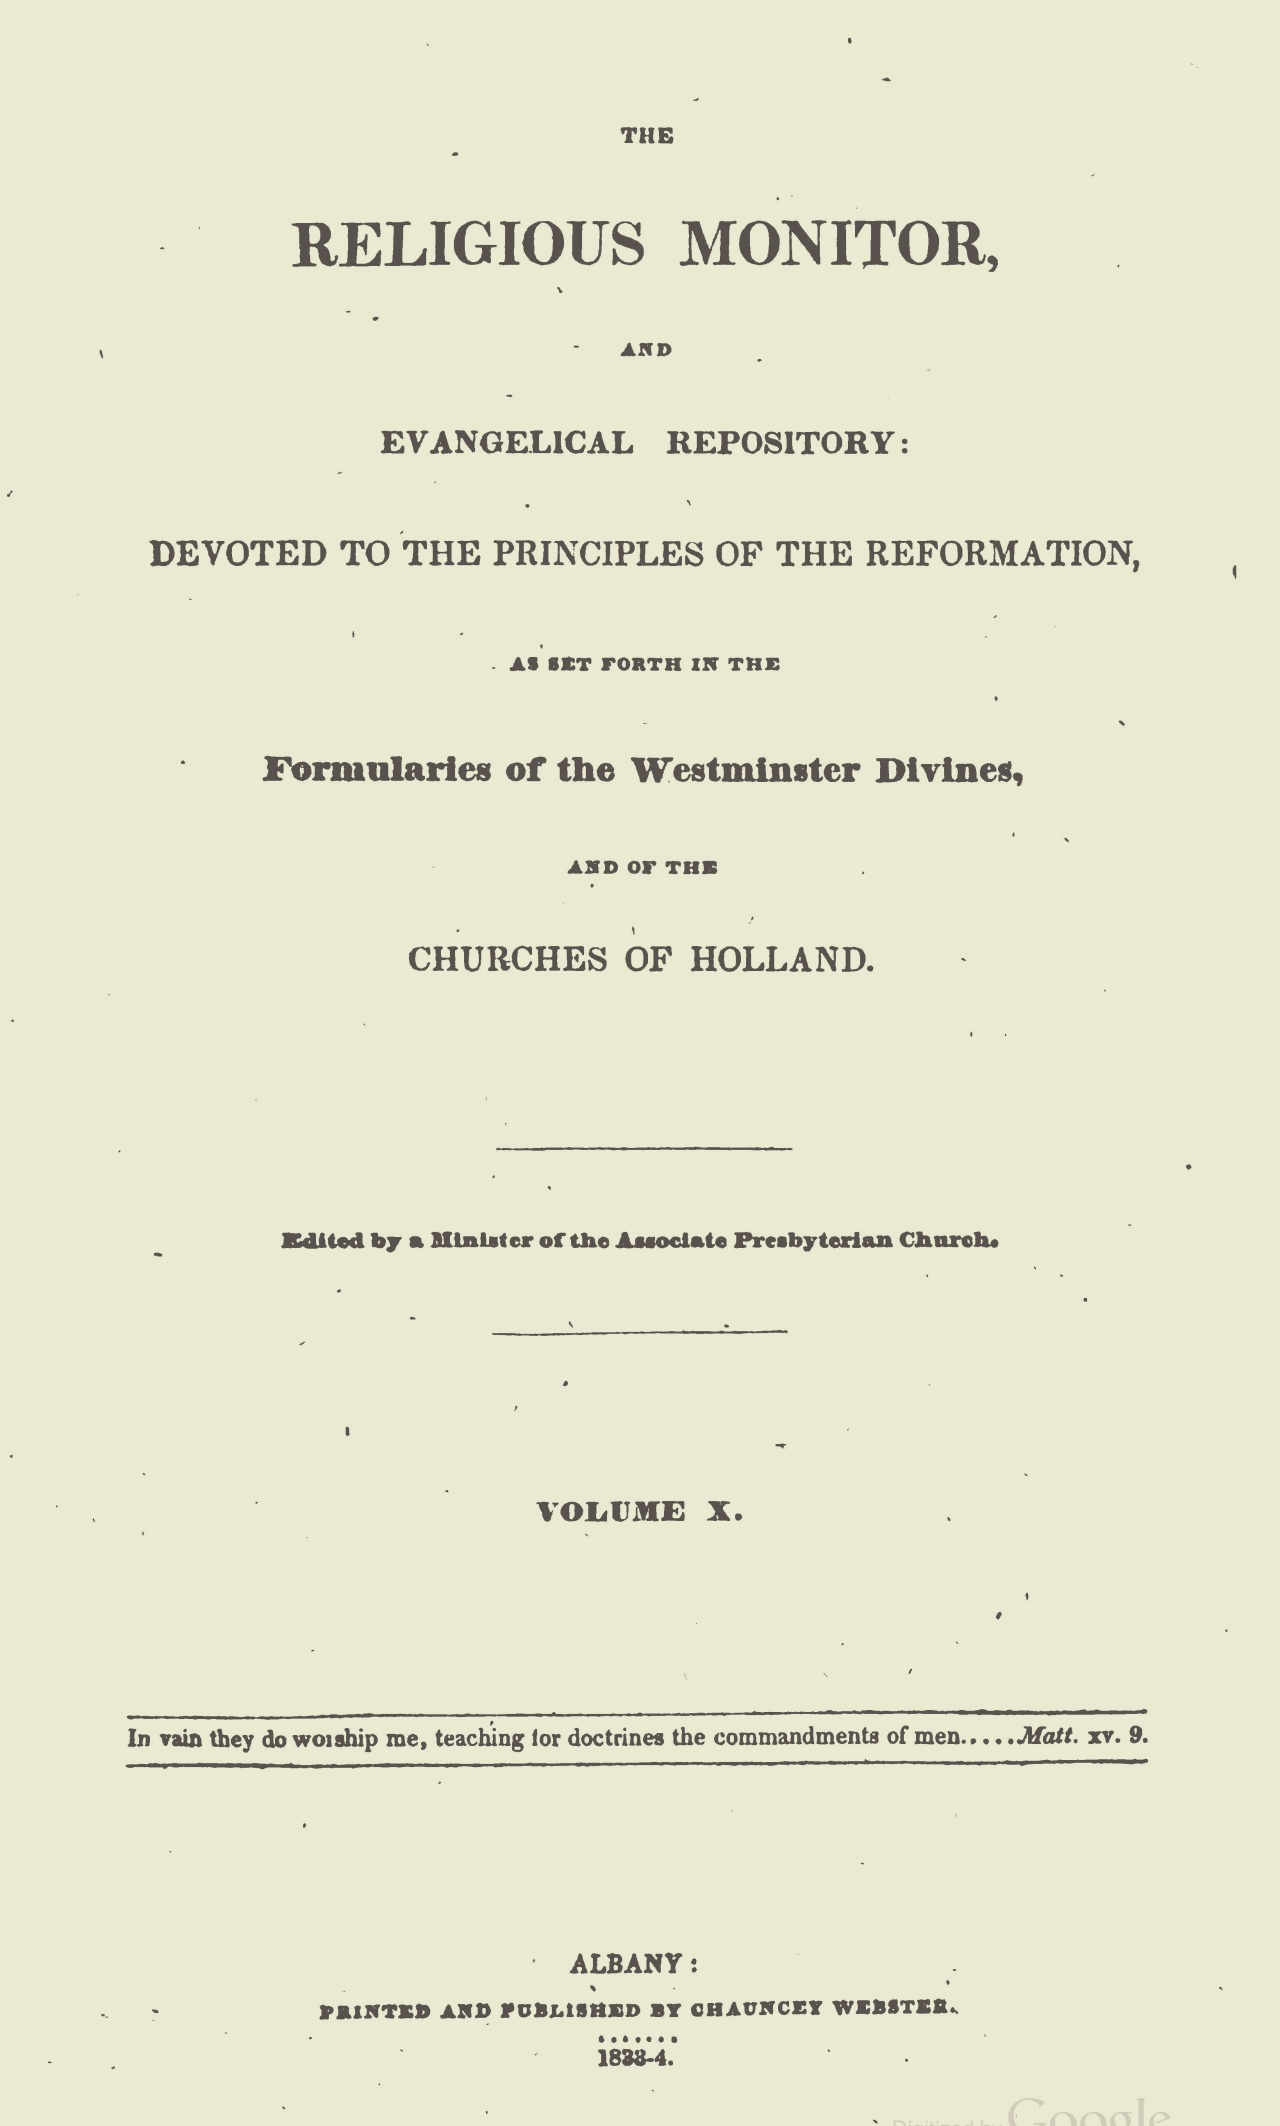 Webster, Chauncey, The Religious Monitor, and Evangelical Repository, Vol. 10 Title Page.jpg